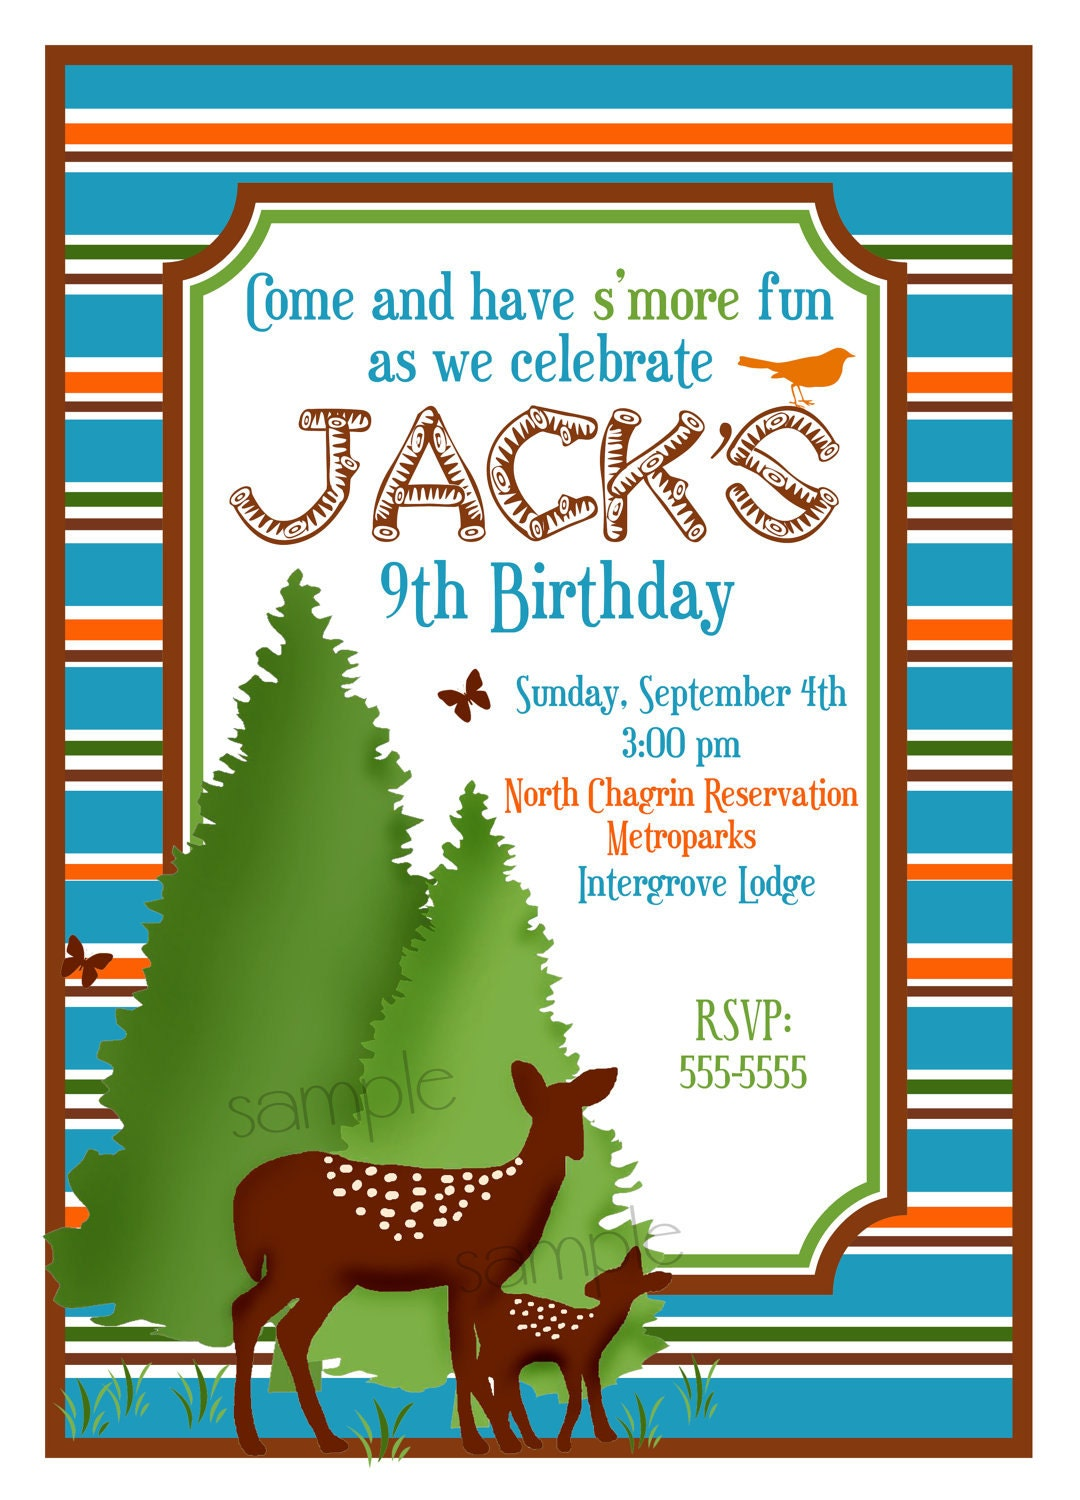 Camping Birthday Party Invitations is an amazing ideas you had to choose for invitation design